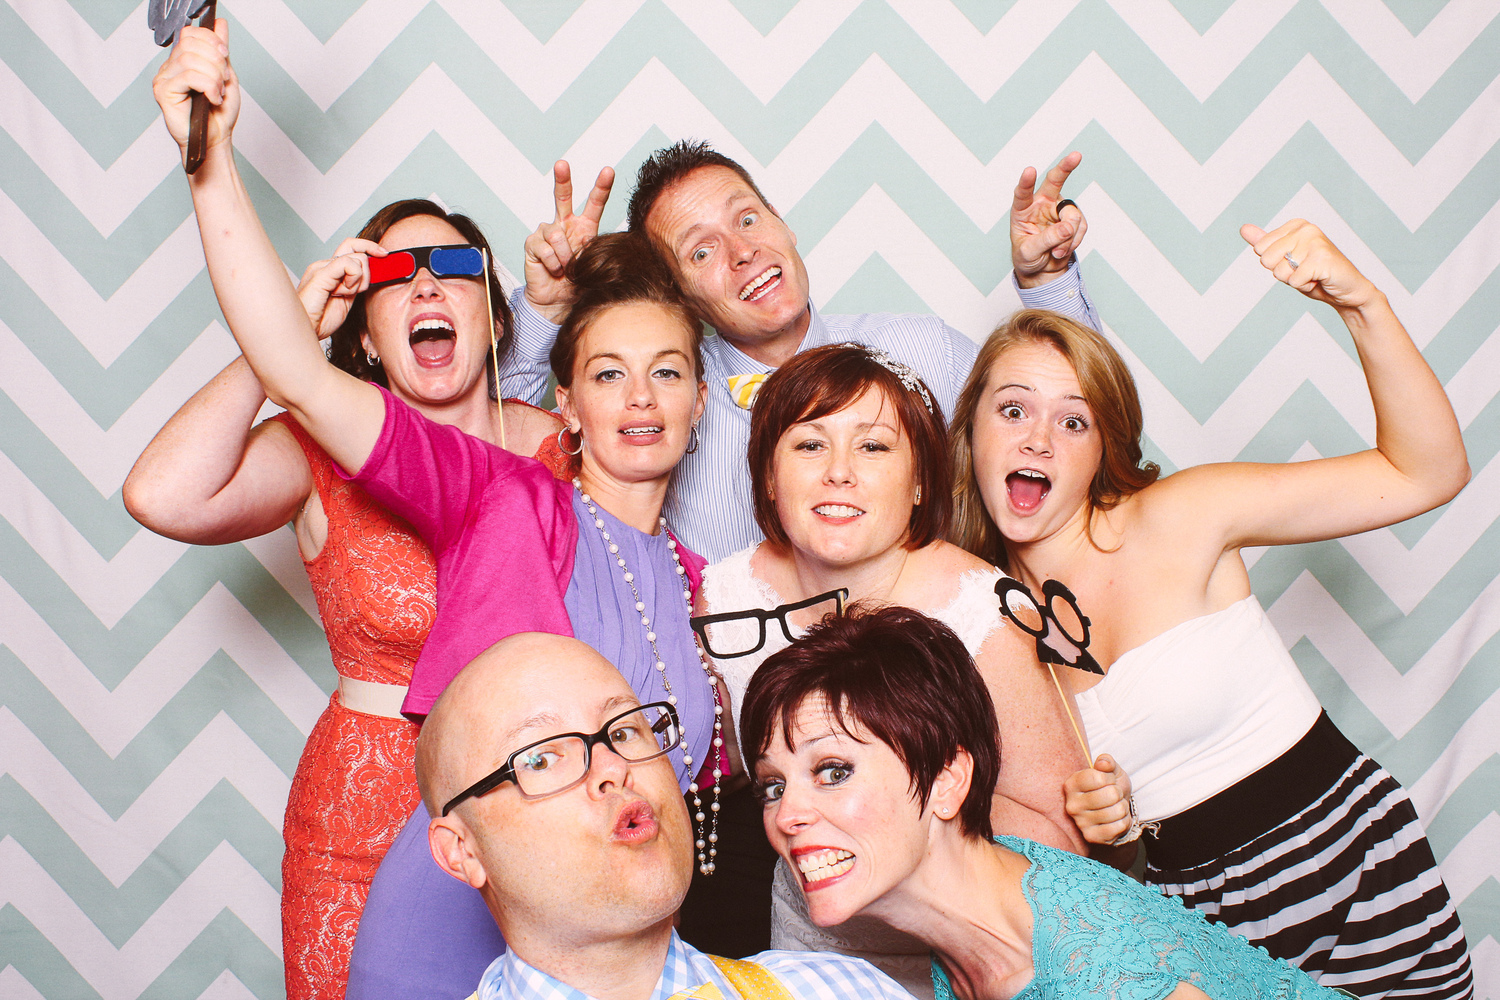 00214-Michigan+Wedding+Photobooth-20140809.jpg